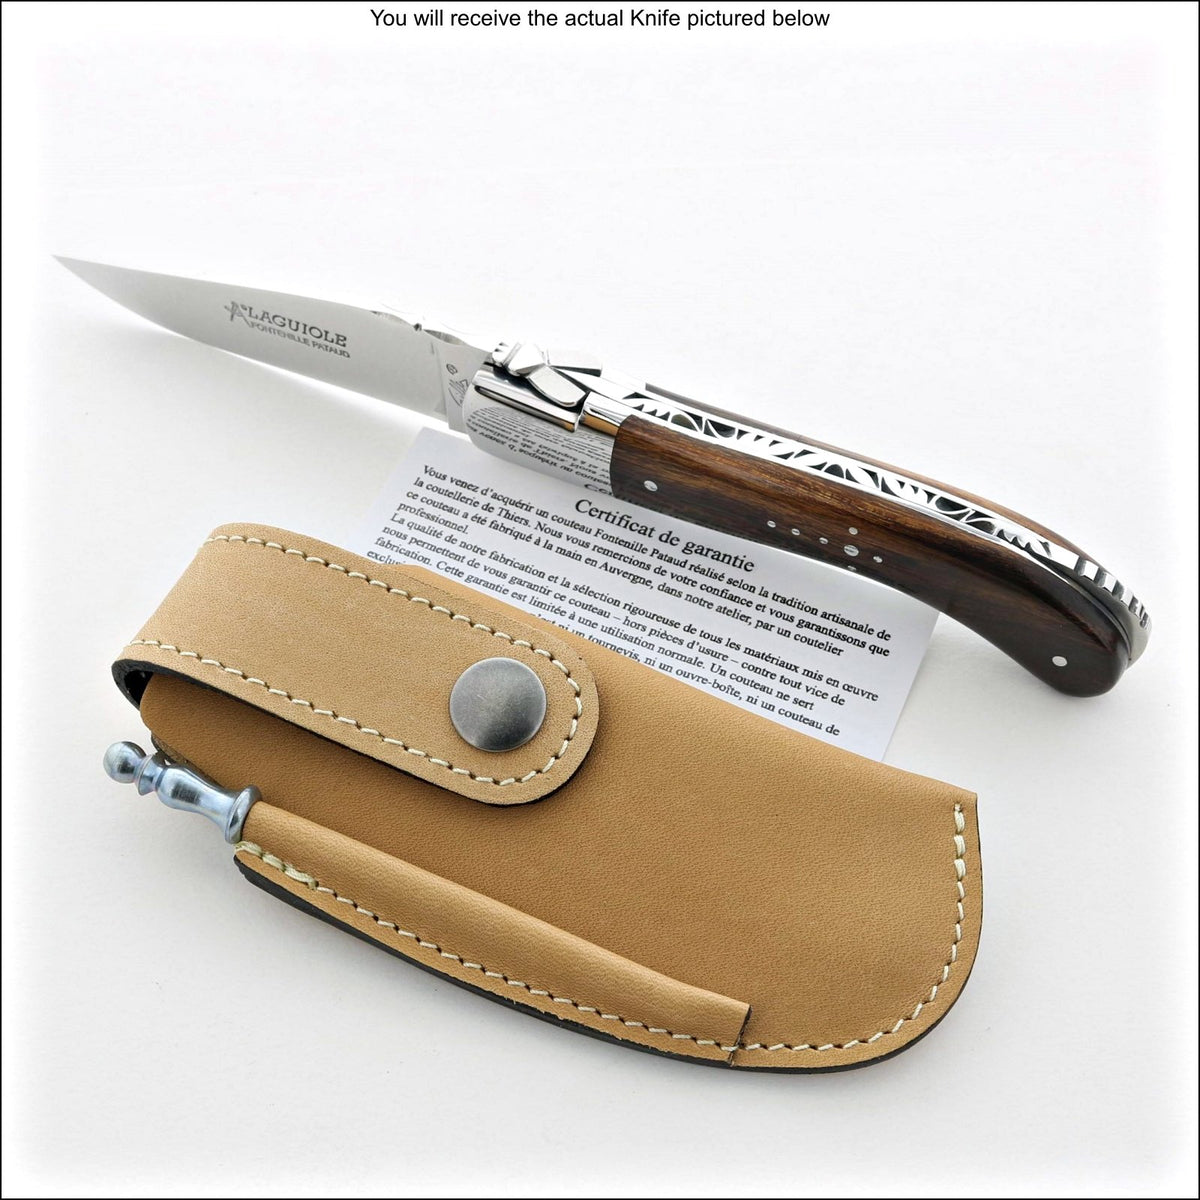 Laguiole Sport Classic Knife Ironwood